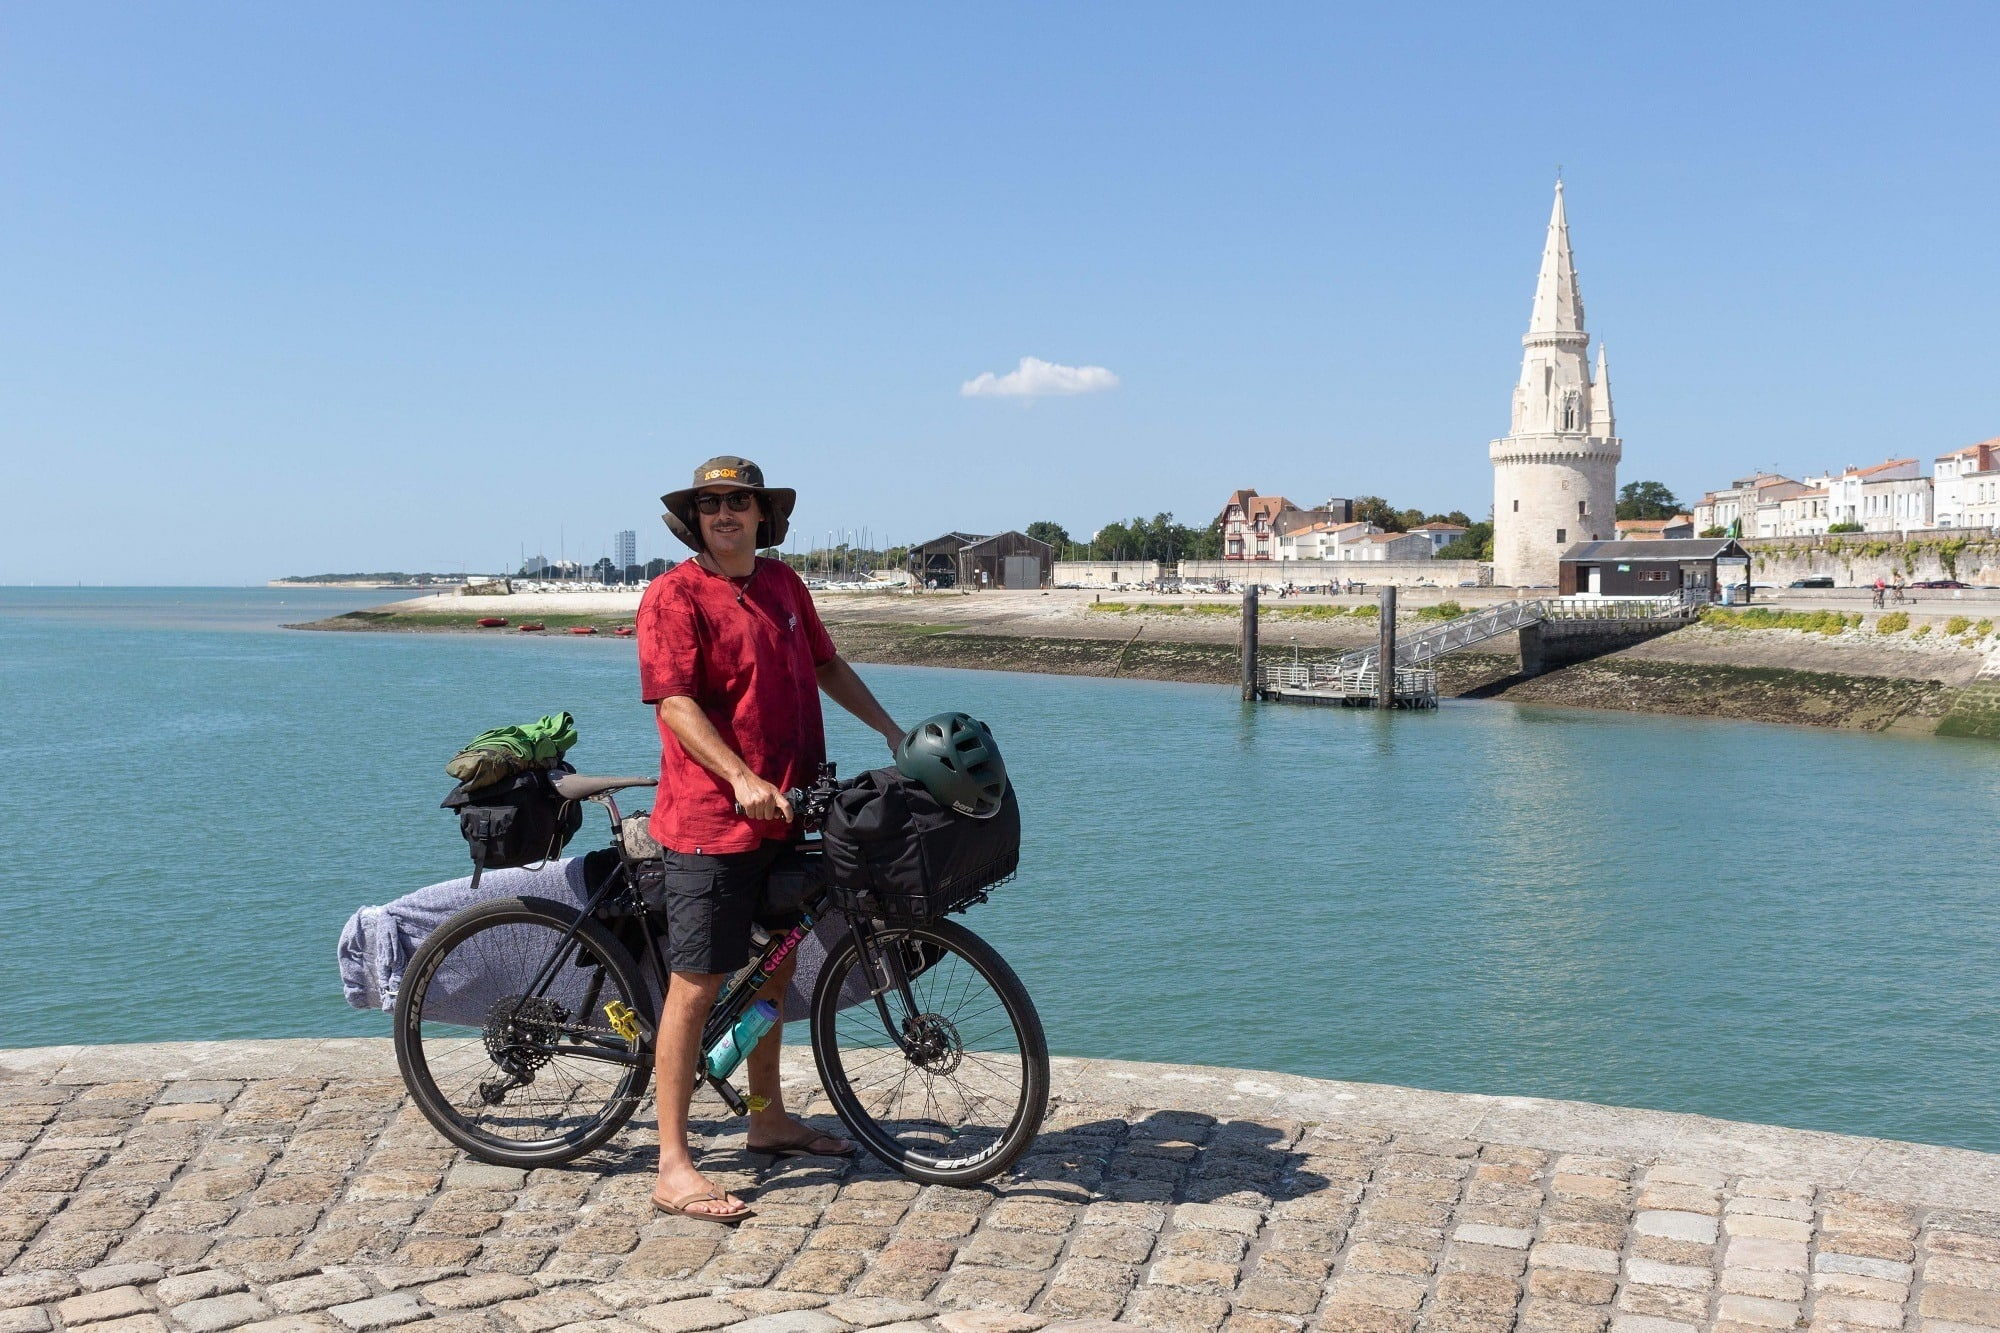 This guide will help you plan a bike touring trip in France on the Velodyssee Atlantic cycling route along the French coast.